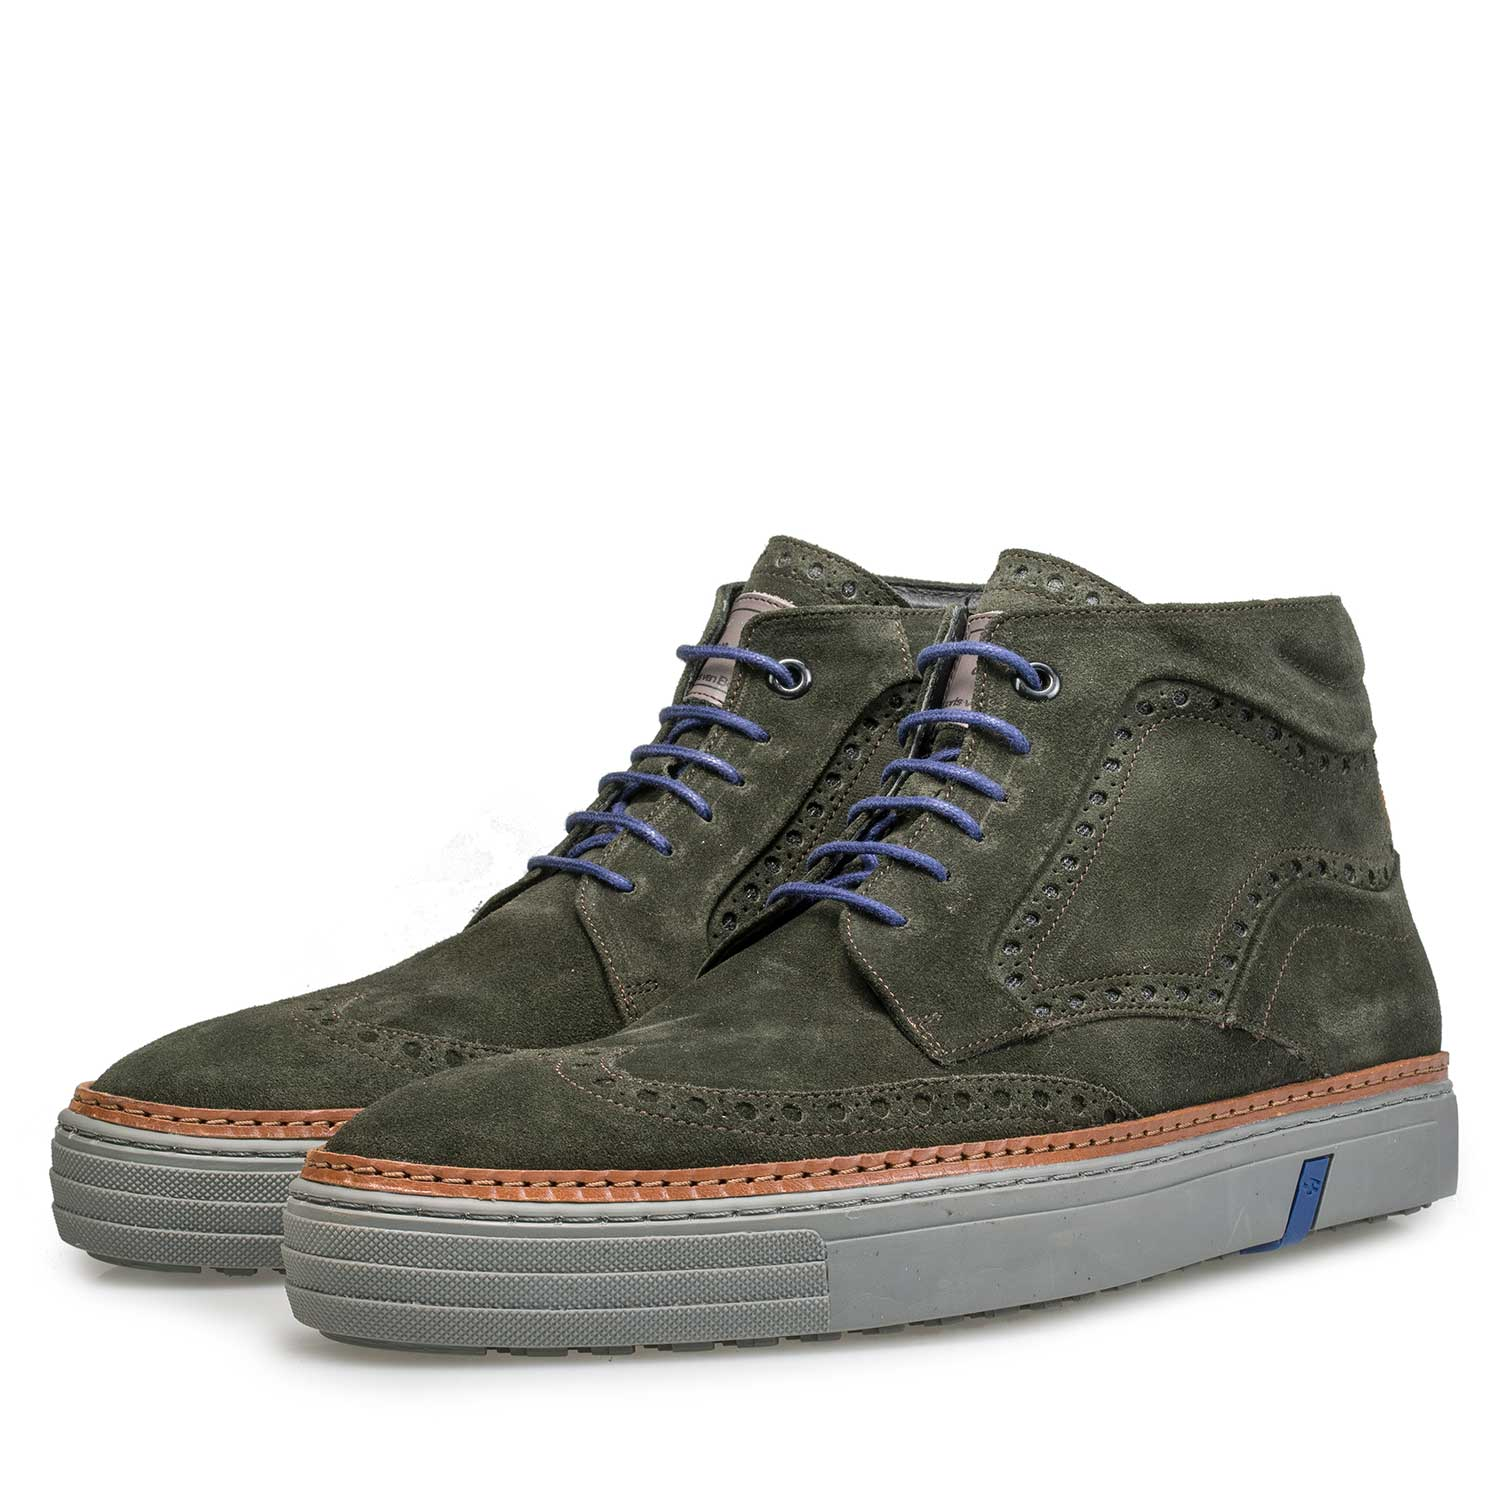 10080/02 - Mid-high olive green brogue sneaker